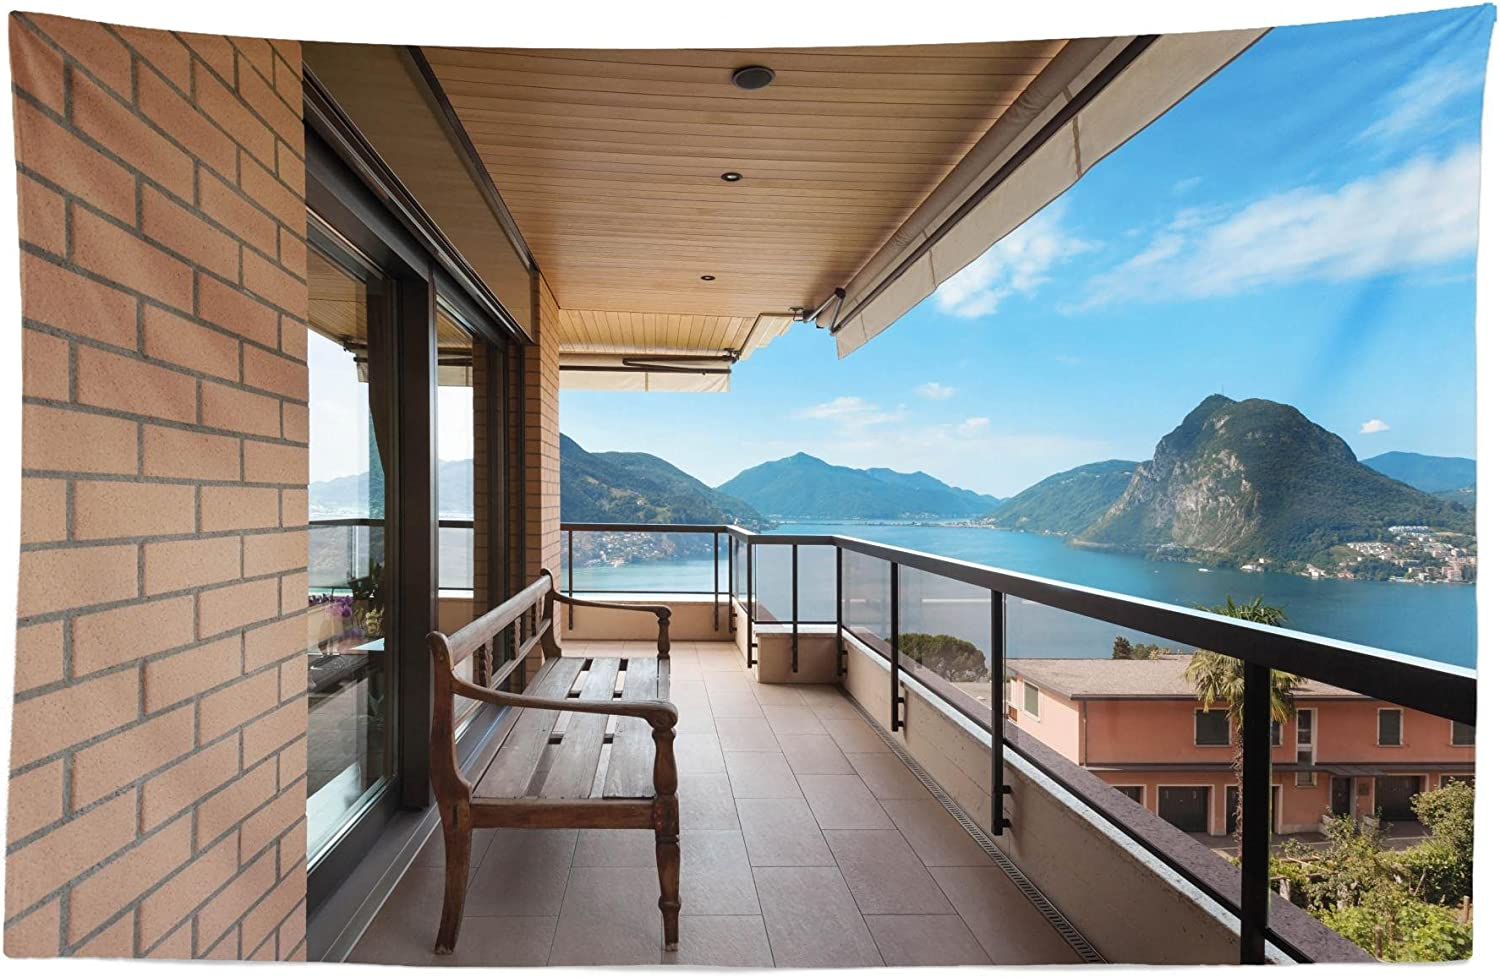 Lunarable Modern Tapestry, Lugano Lake Panoramic View from The Terrace of Apartment Mountains and Sea, Fabric Wall Hanging Decor for Bedroom Living Room Dorm, 45